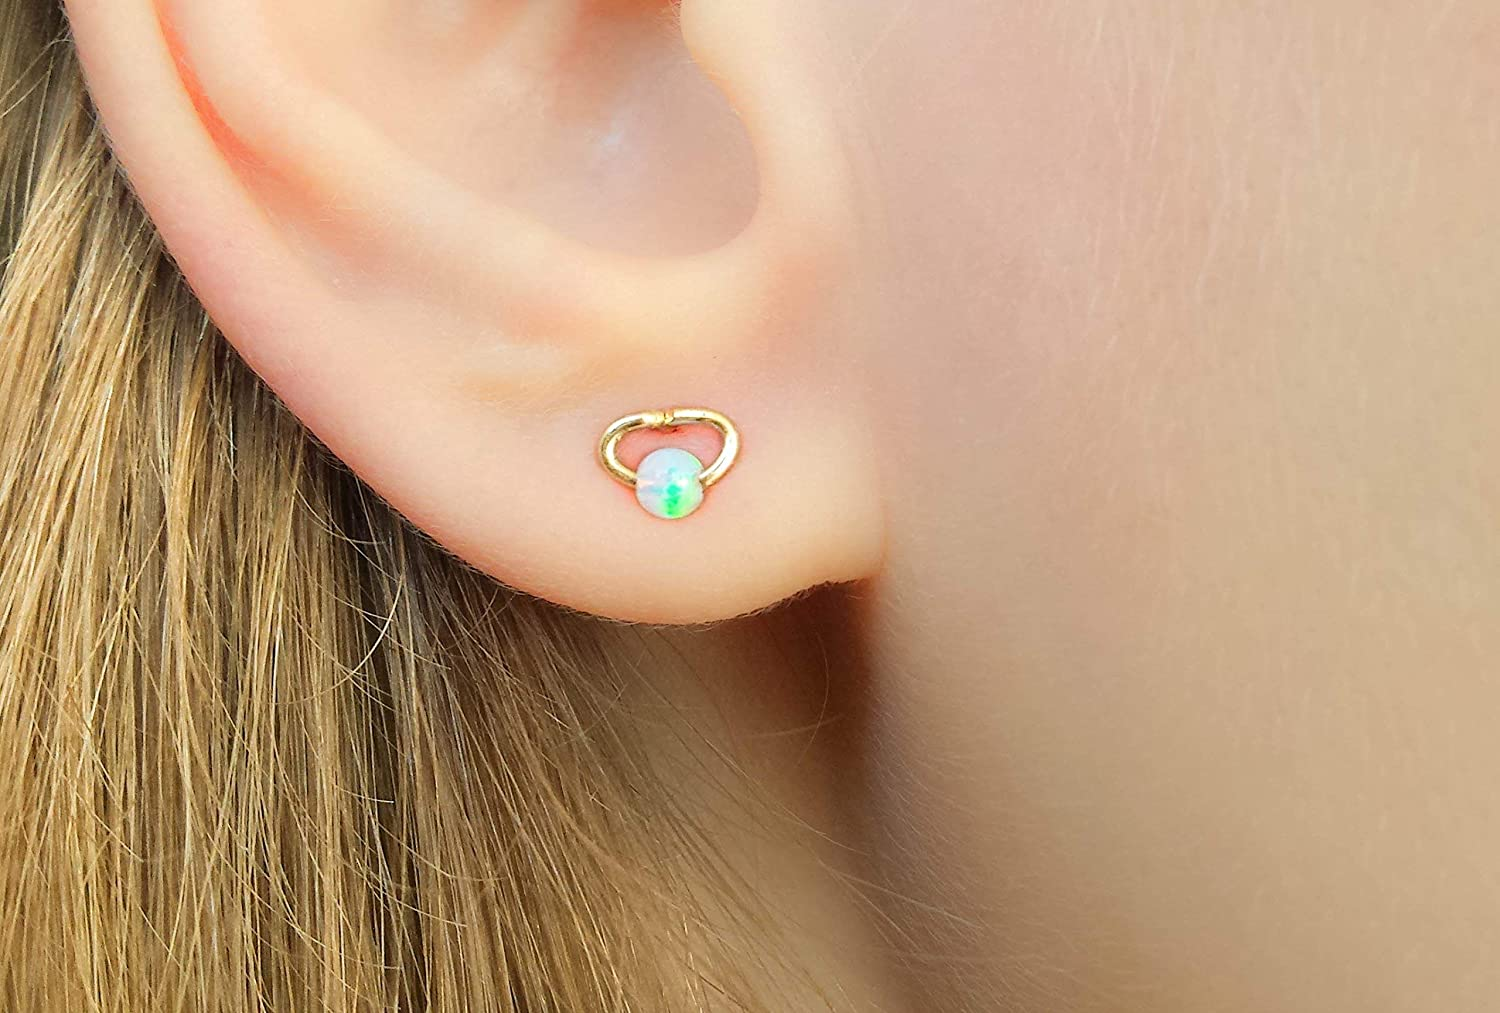 White Opal Earrings Small Studs Gold Filled Jewelry Handmade